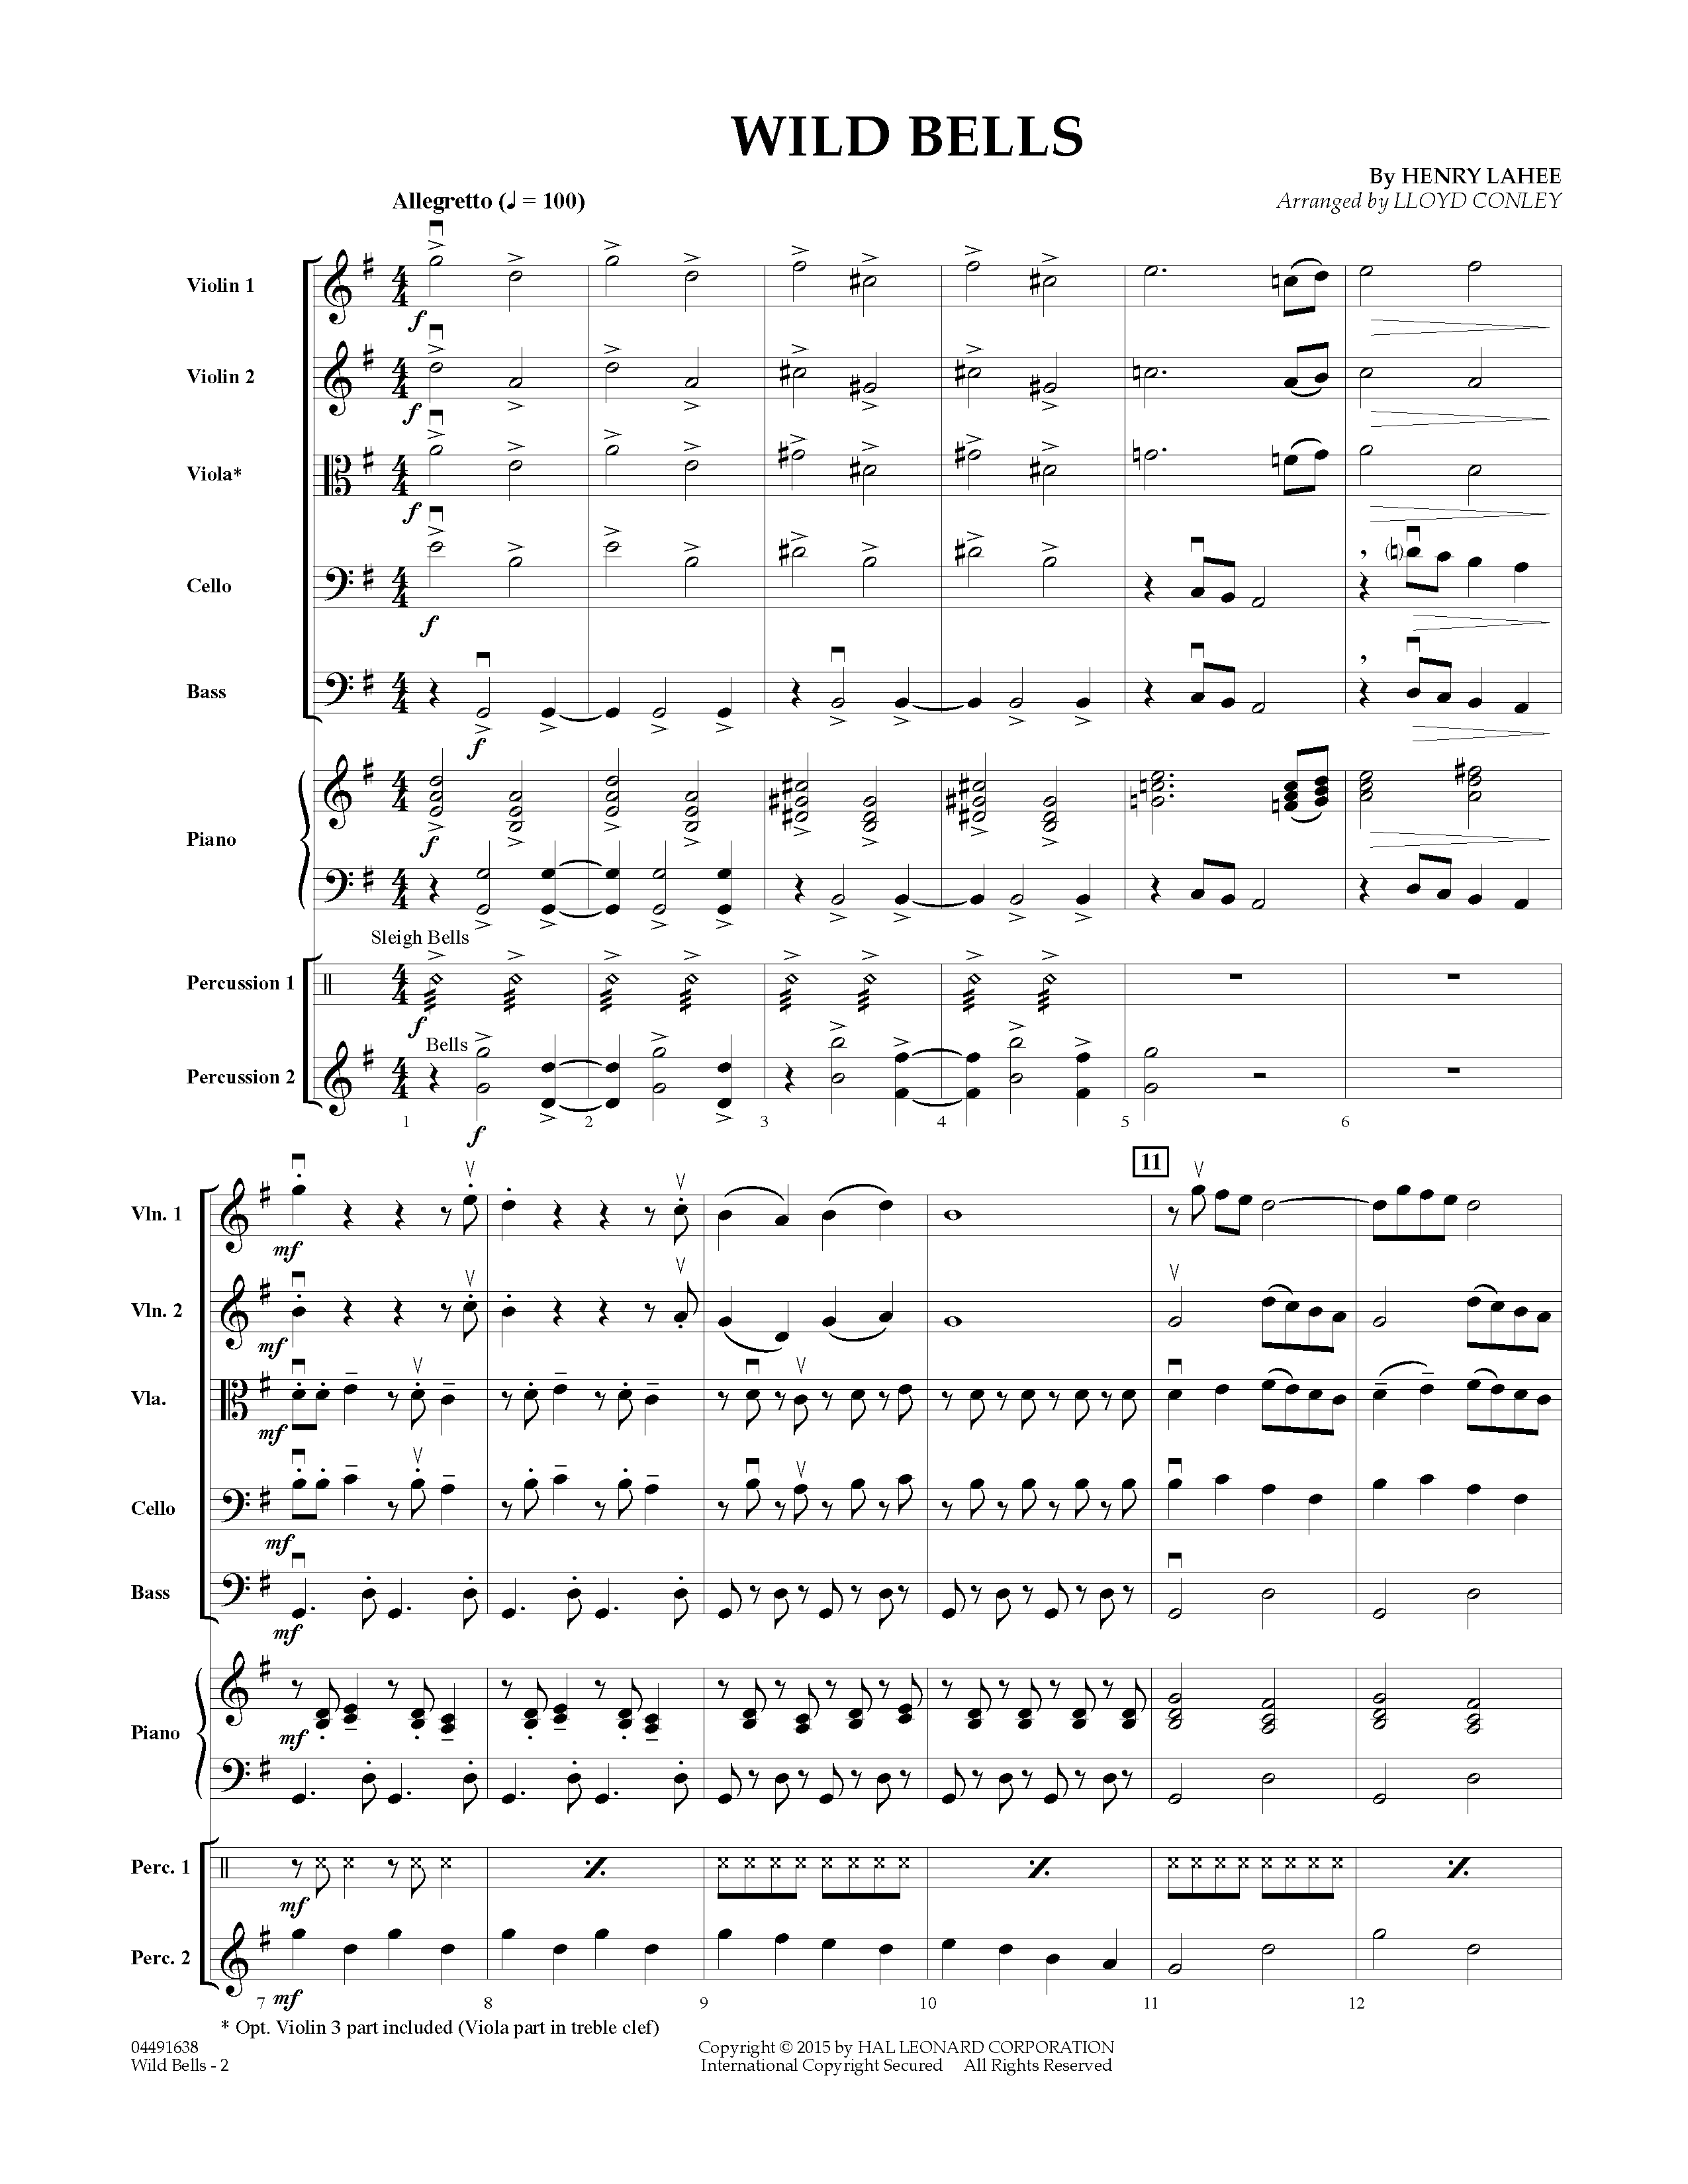 Wild Bells (COMPLETE) sheet music for orchestra by Lloyd Conley